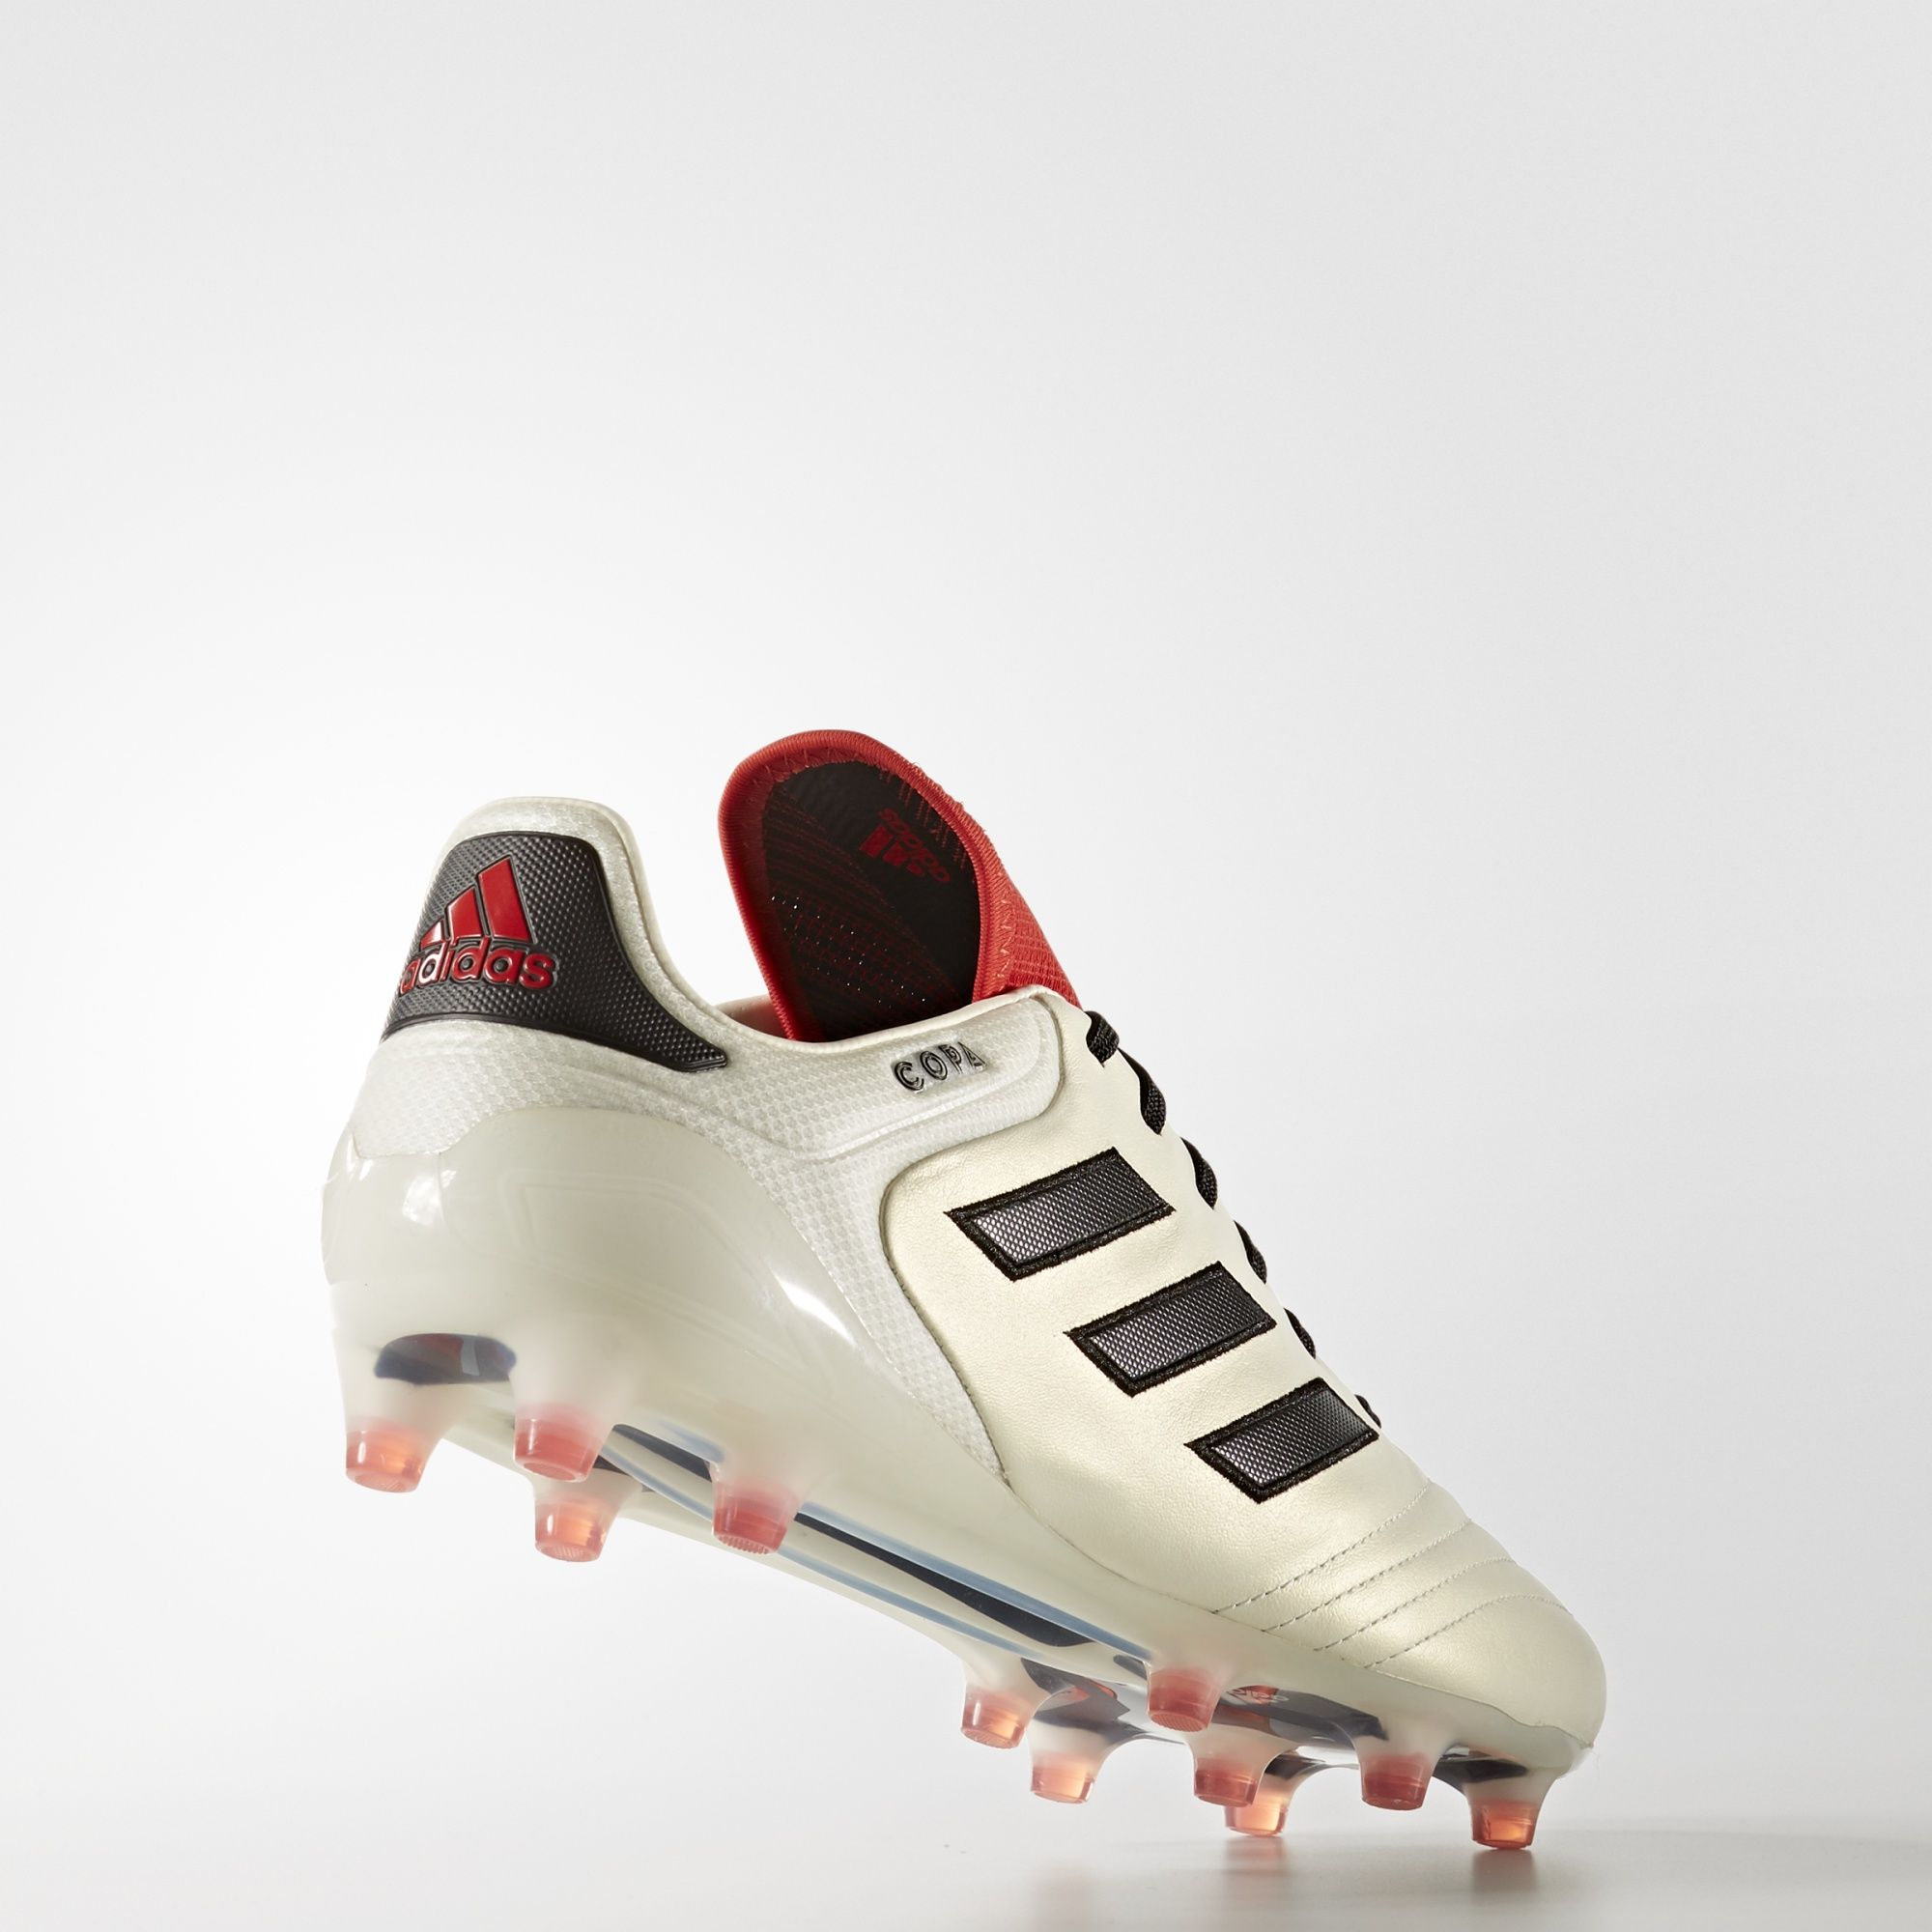 sale retailer 6b159 35e67 ... Click to enlarge image  adidas copa 17 1 champagne firm ground boots off white core black red e.jpg  ...